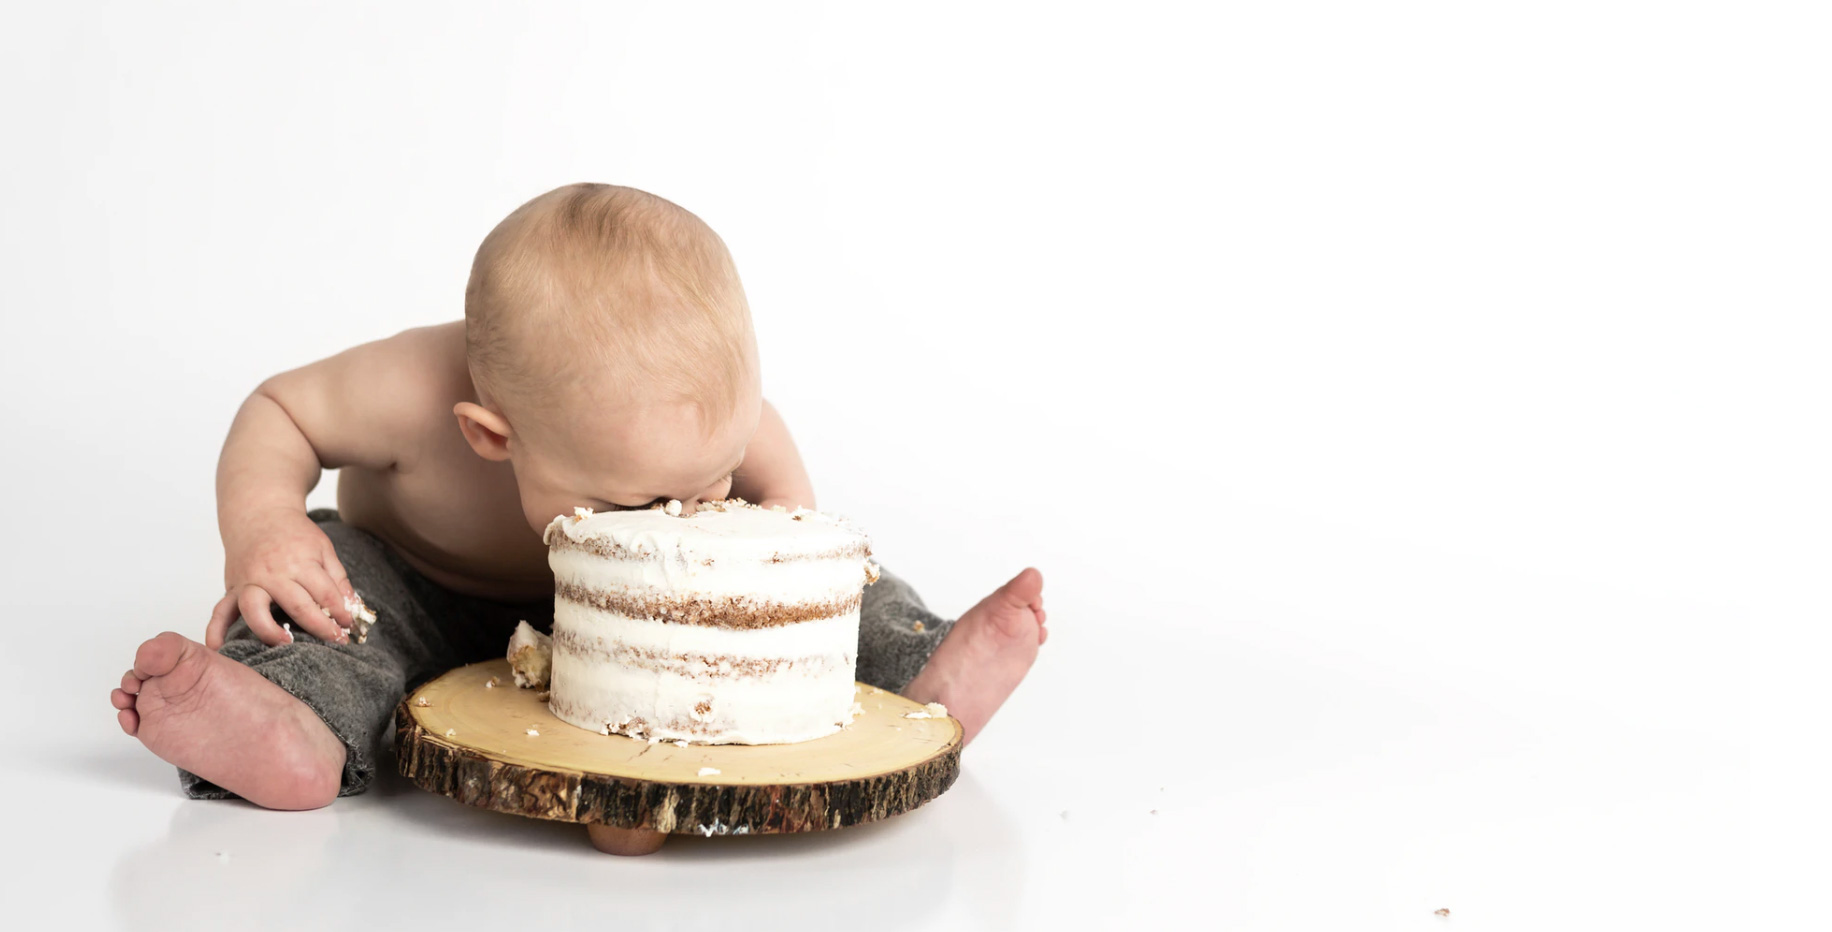 Child eating cake and digging head into it